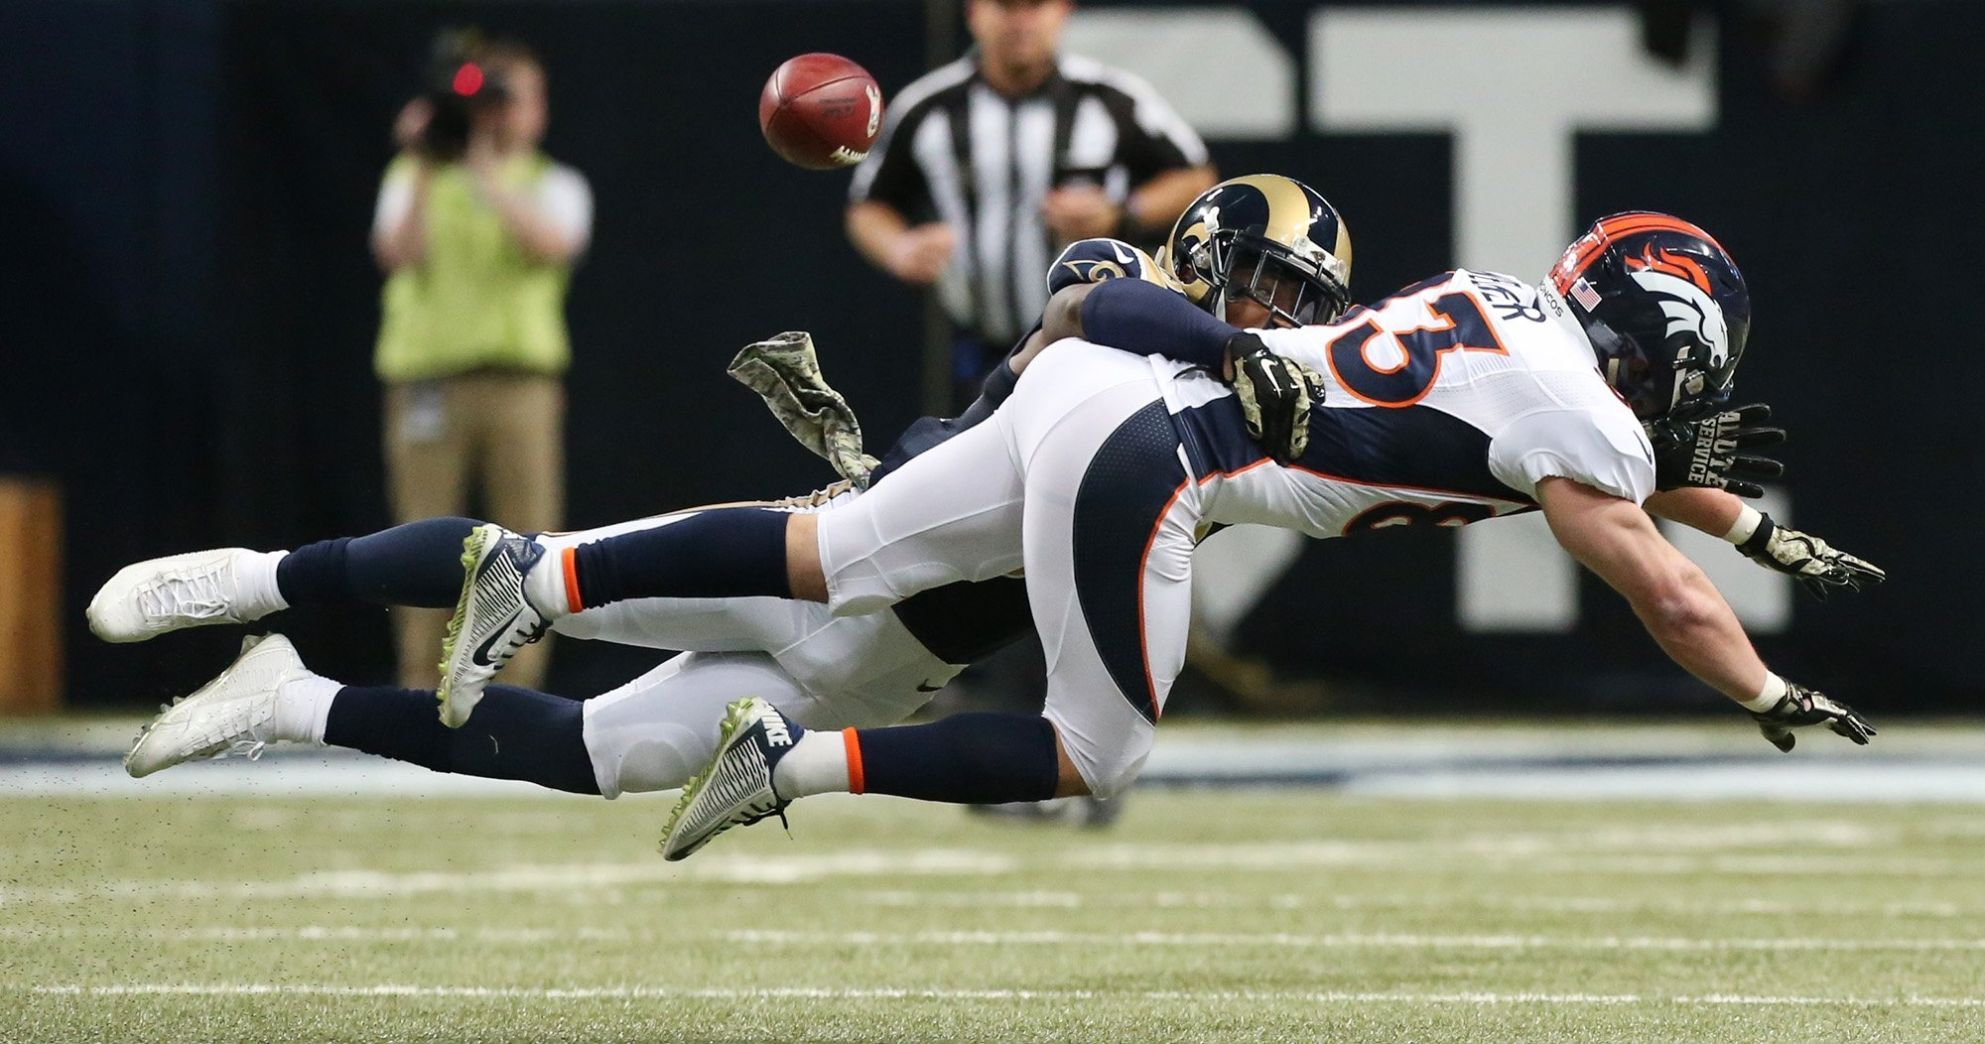 Rams hope Welker can help move the chains